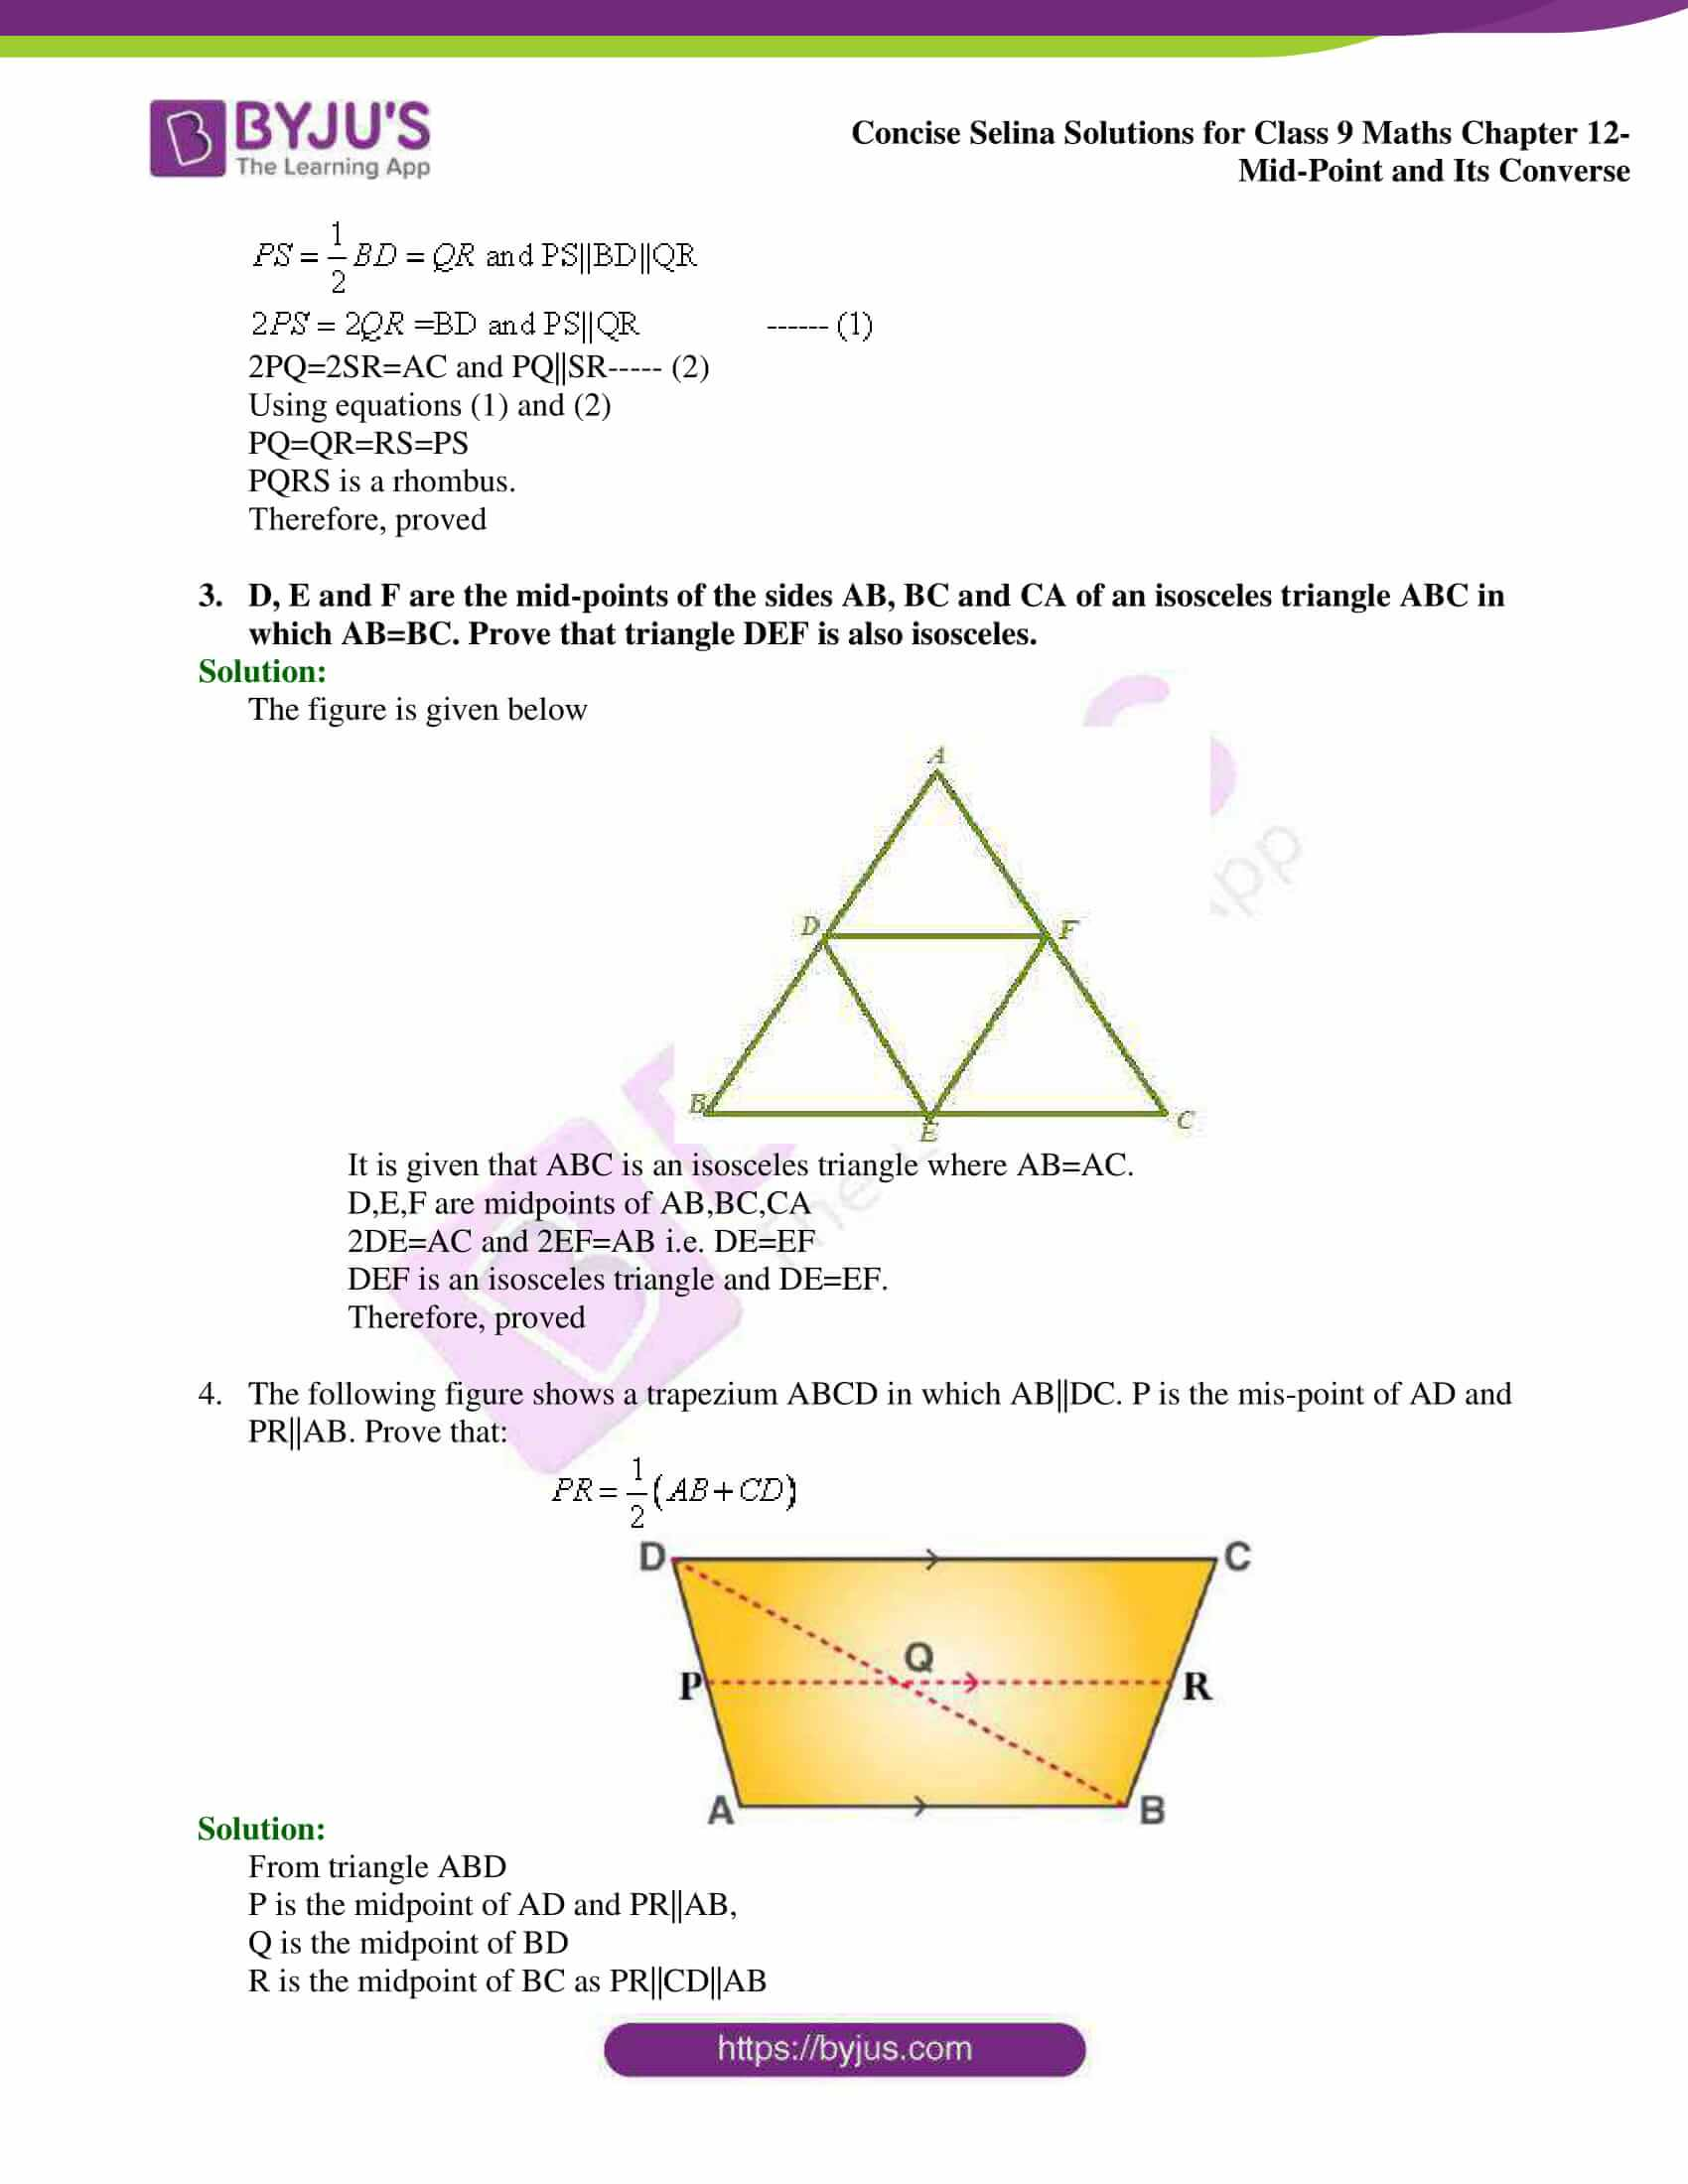 selina Solutions for Class 9 Maths Chapter 12 02